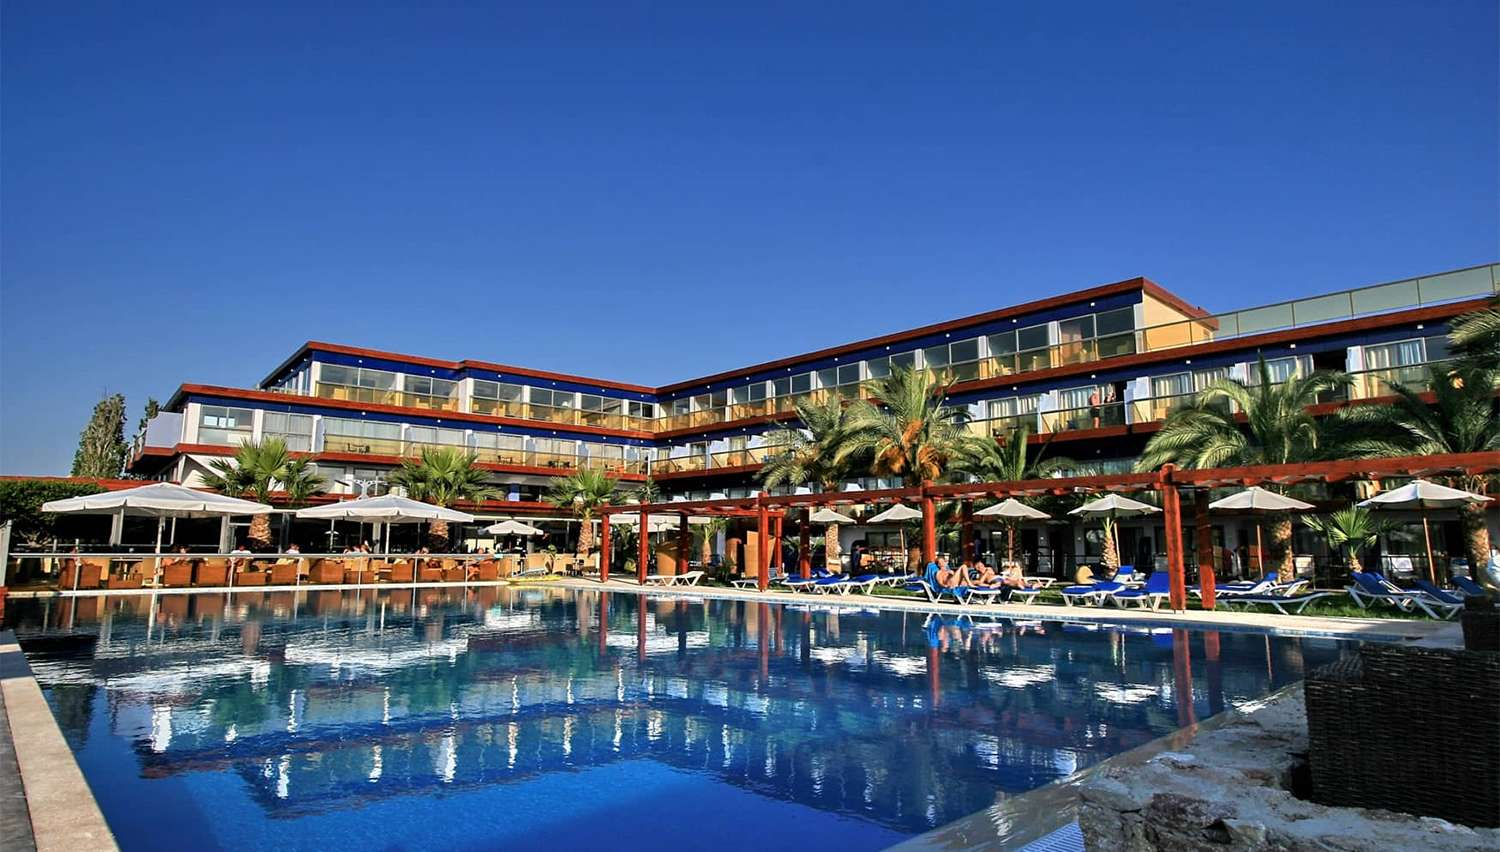 278a6ca5f38 All Senses Ocean Blue Seaside Resort & SPA hotell (Rhodos, Kreeka ...